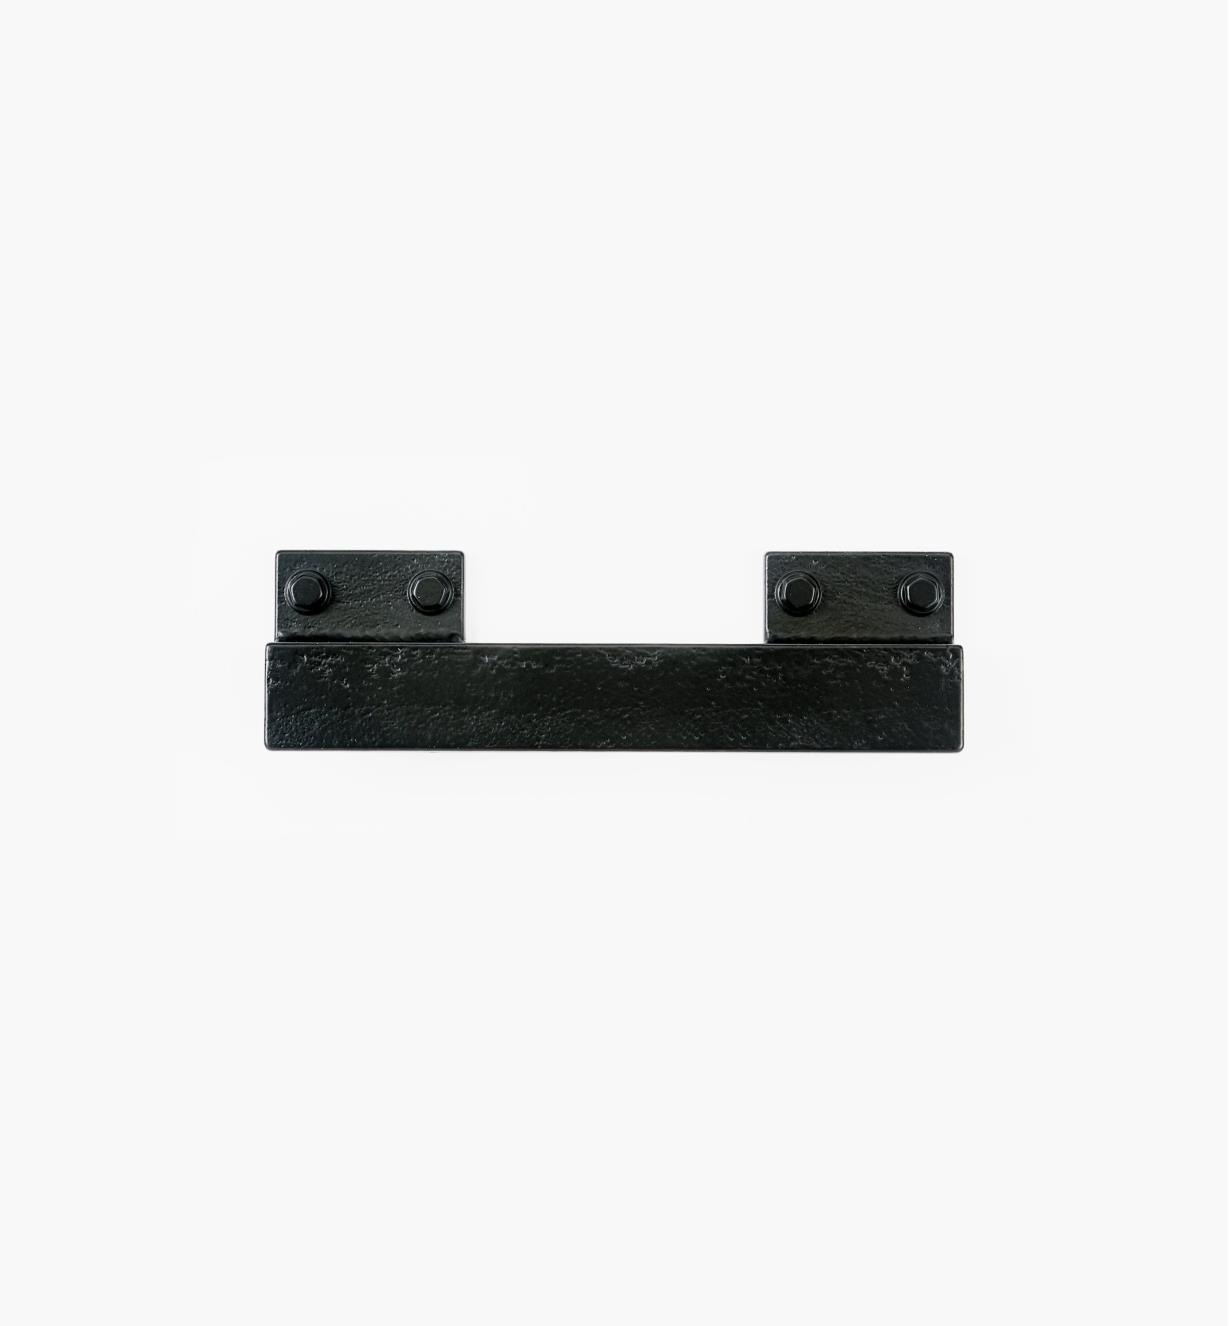 00A7832 - Factory Hardware 160mm/96mm Blackened Iron Handle, each